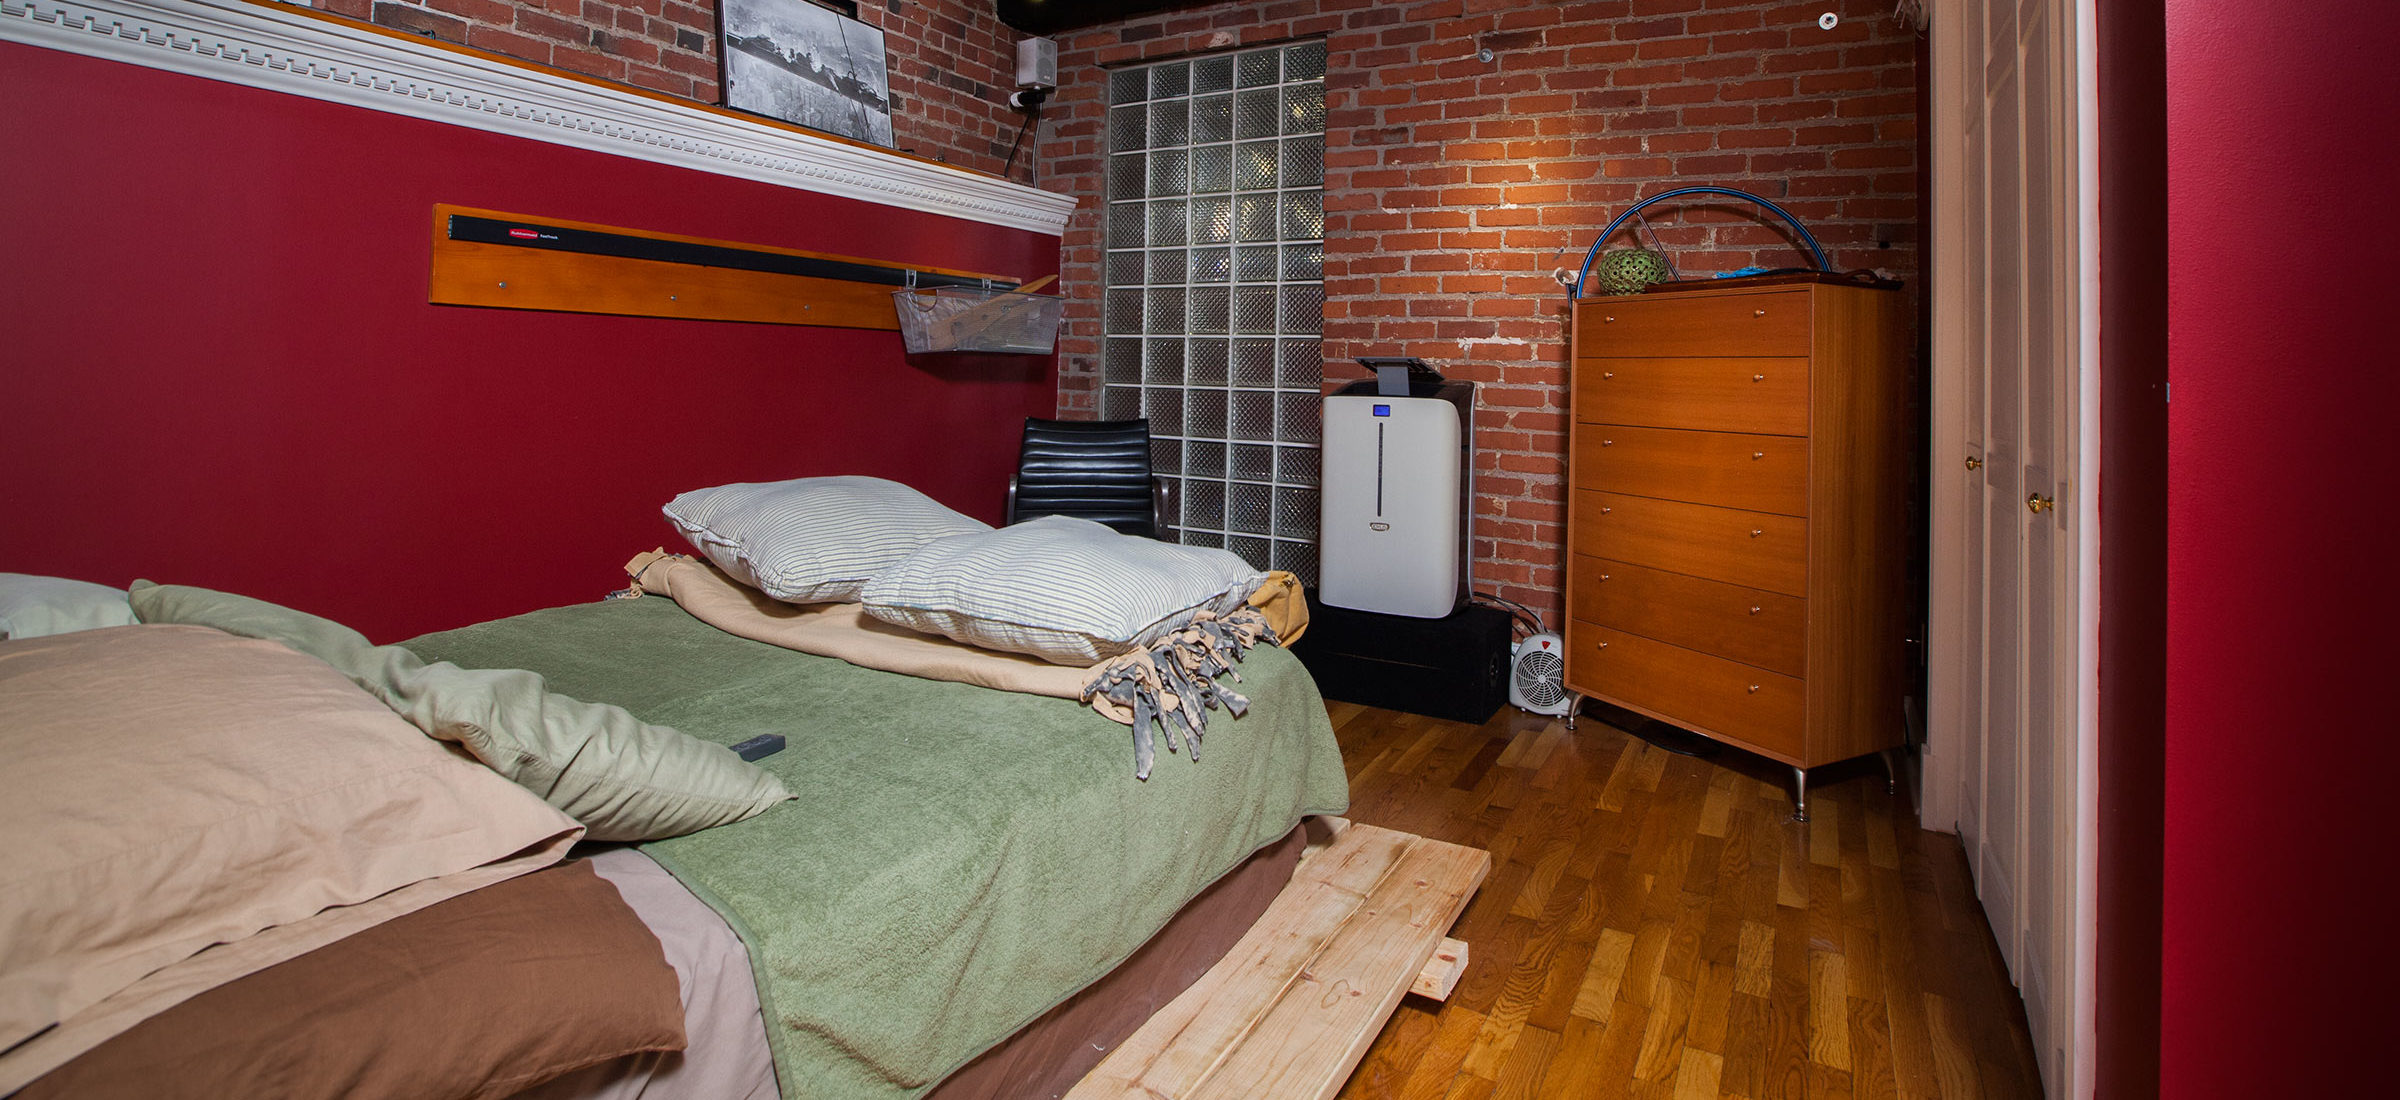 Loft B The Lofts On Belmont Indianapolis Indiana Apartment Rental Near Lilly